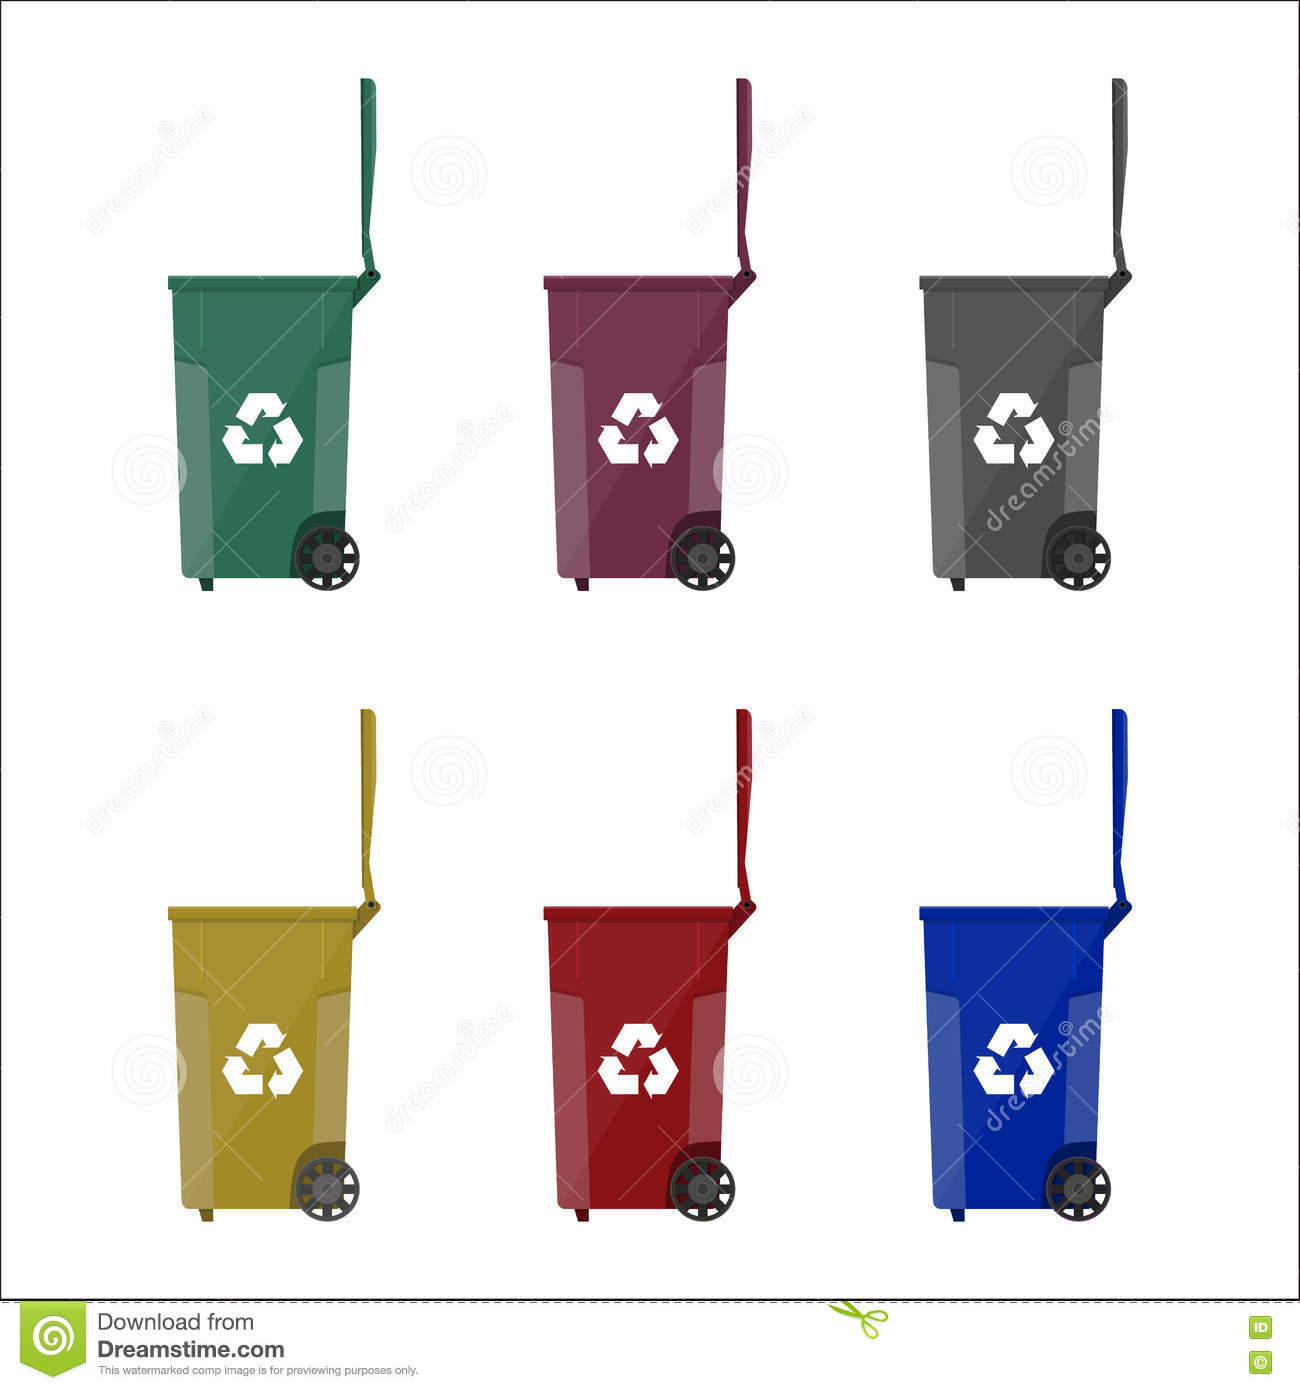 Recycling bins containers for garbage